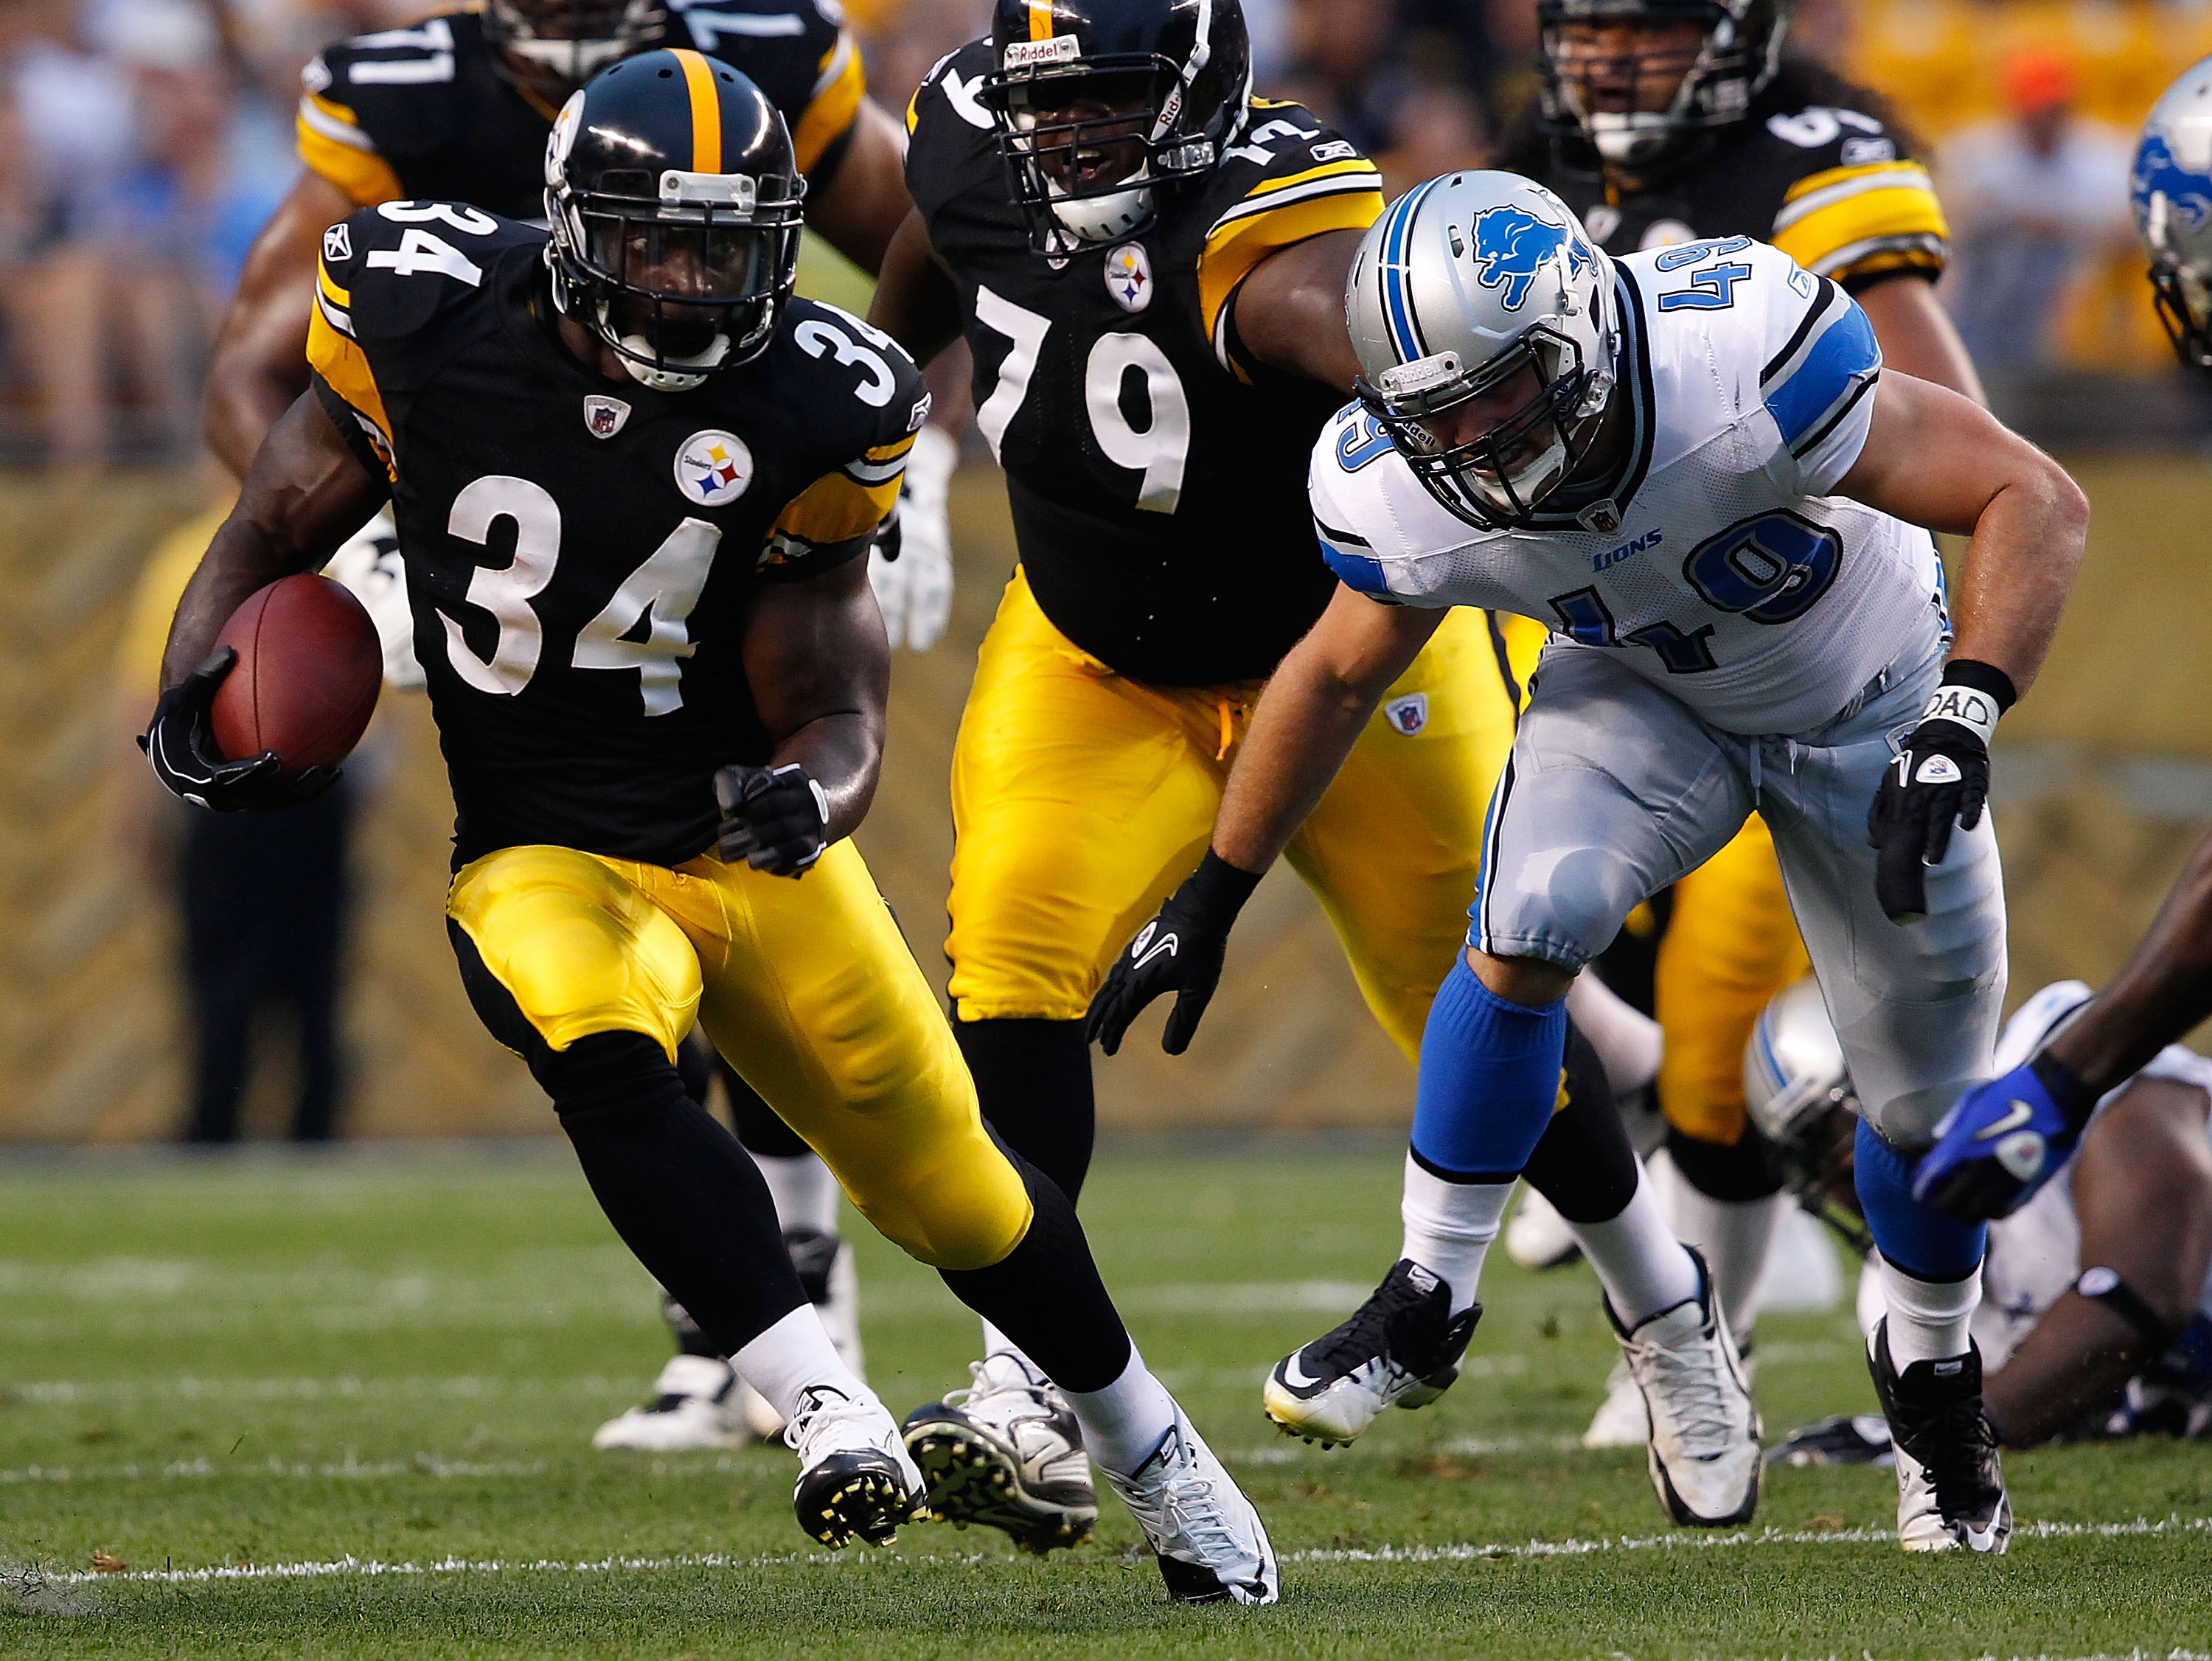 PITTSBURGH - AUGUST 14:  Rashard Mendenhall #34 of the Pittsburgh Steelers runs by Zach Follet #49 of the Detroit Lions during the preseason game on August 14, 2010 at Heinz Field in Pittsburgh, Pennsylvania.  (Photo by Jared Wickerham/Getty Images)